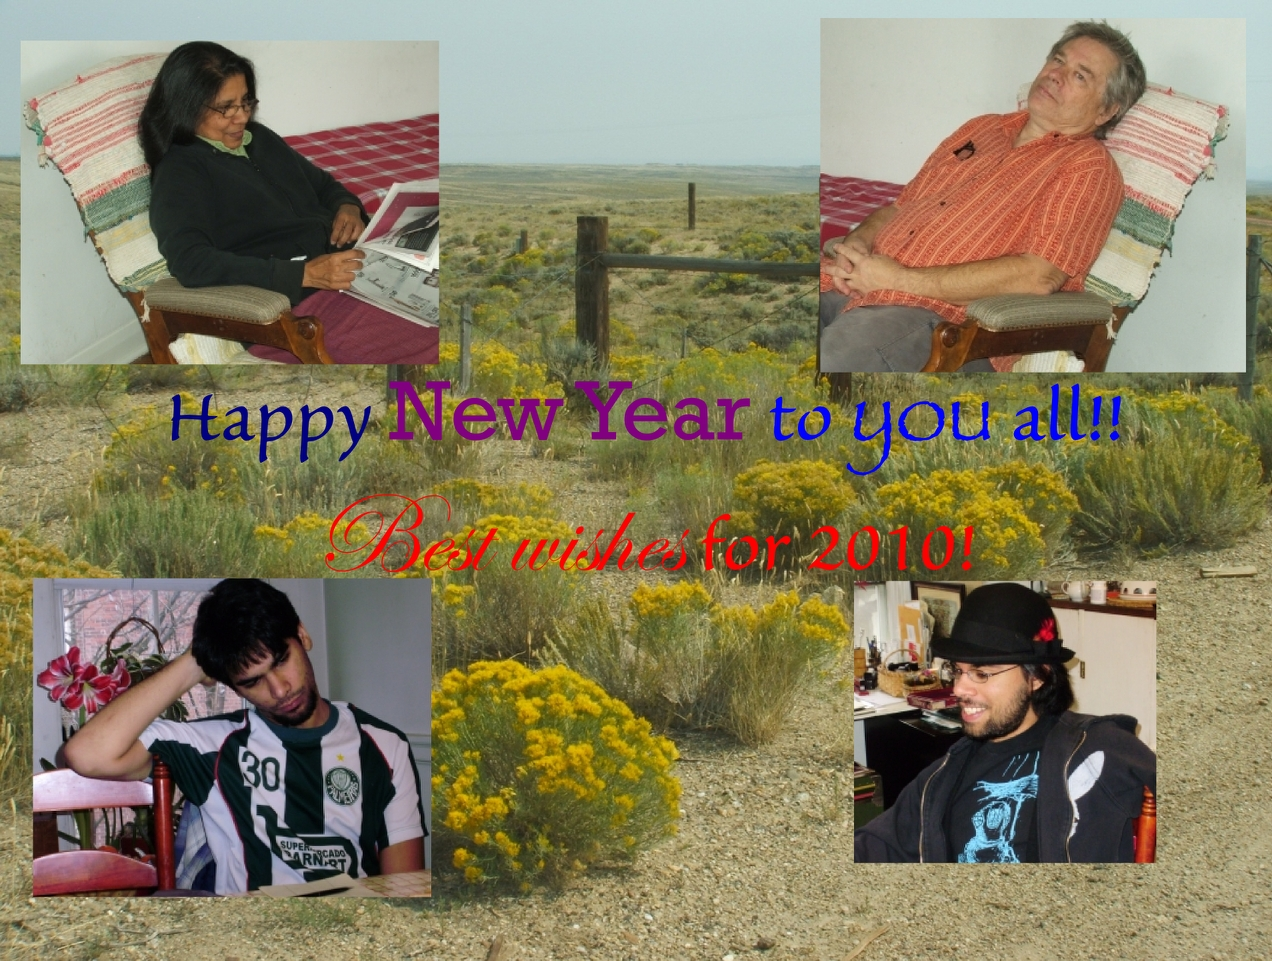 Best wishes for 2010!